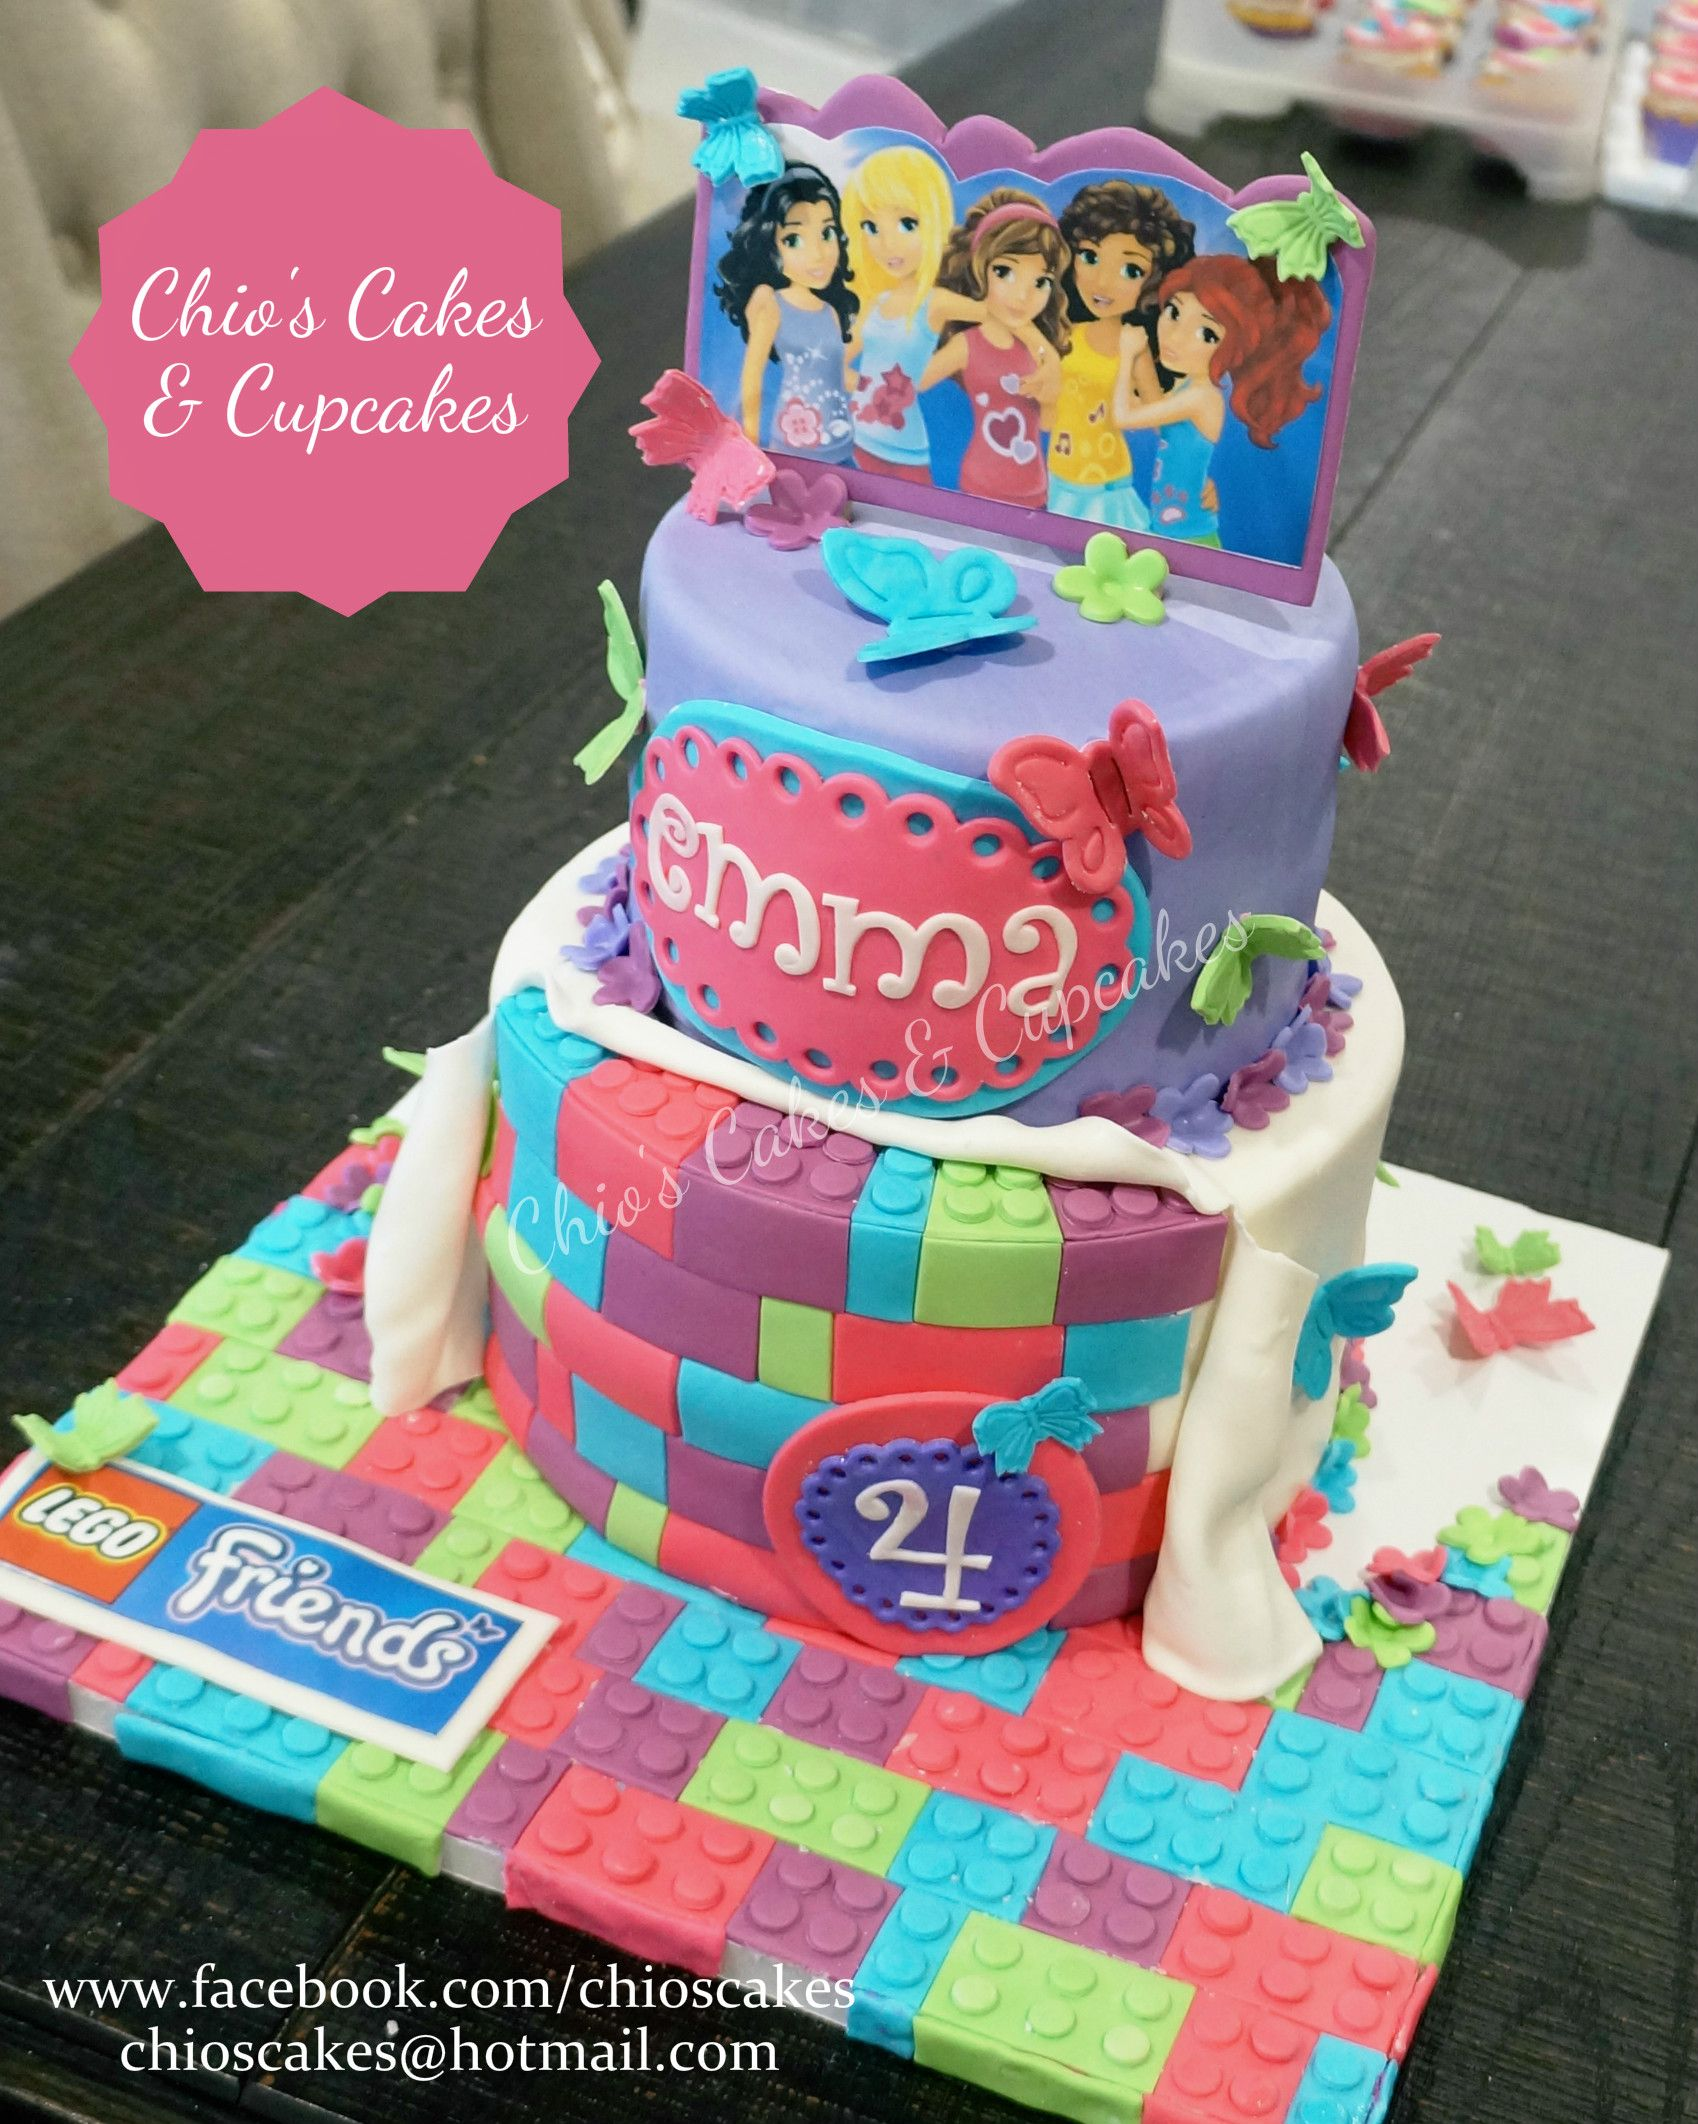 Stupendous Lego Friends Theme Cake Follow Me Facebook Com Chioscakes Personalised Birthday Cards Paralily Jamesorg